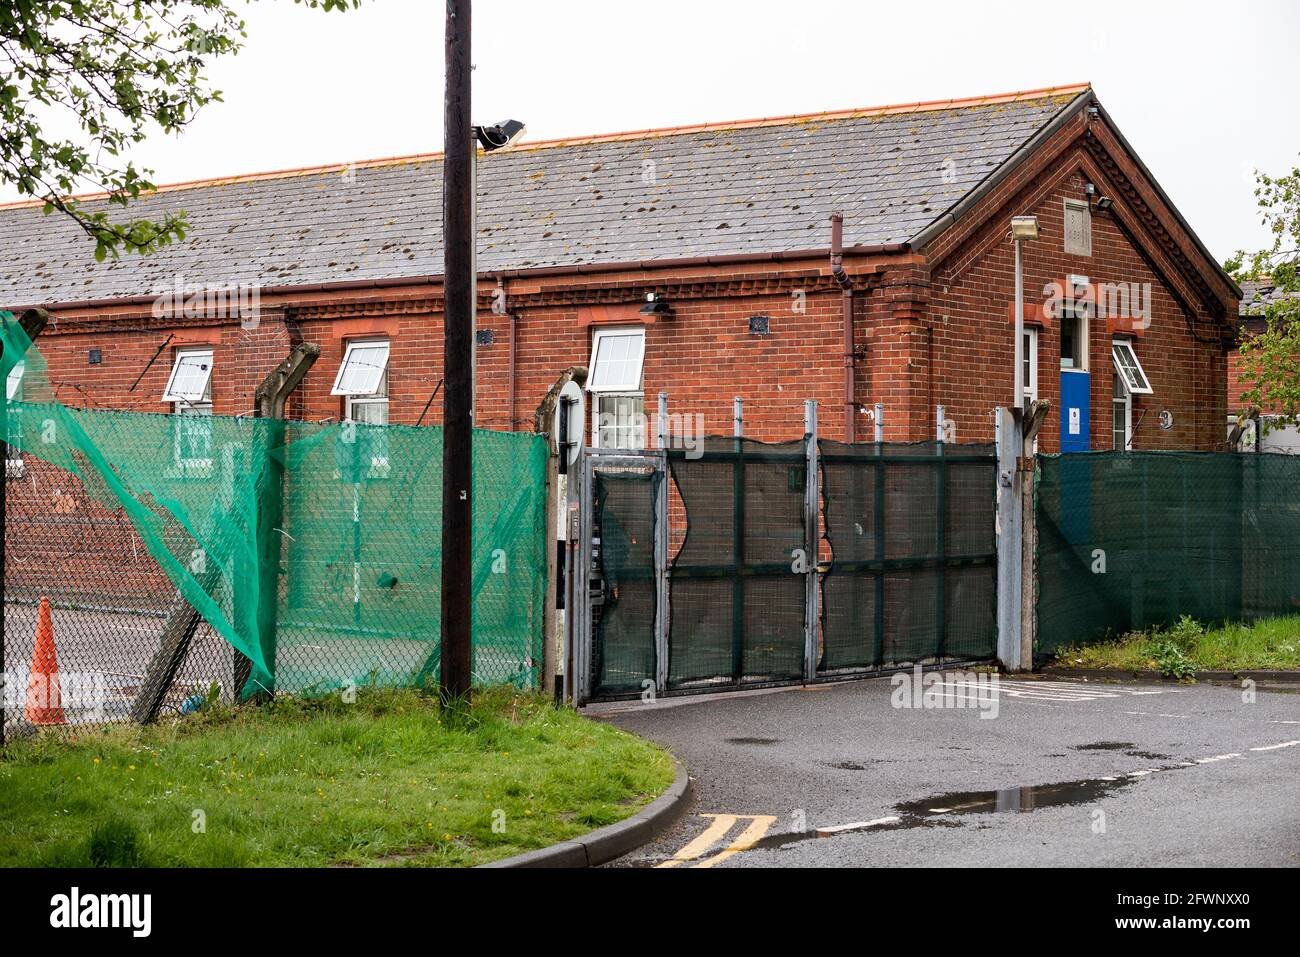 since-september-2020-ex-mod-napier-barracks-folkestone-have-been-used-by-the-home-office-to-provide-temporary-accommodation-for-single-adult-male-refugees-who-are-seeking-uk-asylum-the-camp-is-operated-by-clearspring-ready-homes-previously-around-25-of-the-camps-refugees-have-tested-positive-for-covid-19-caused-by-a-serious-lack-of-facility-for-social-distancing-the-barracks-have-also-been-declared-unsuitable-for-human-accommodation-by-independent-inspectors-high-fencing-around-the-napier-barracks-is-topped-by-barbed-wire-pictured-gate-entrance-to-the-napier-barracks-2FWNXX0.jpg